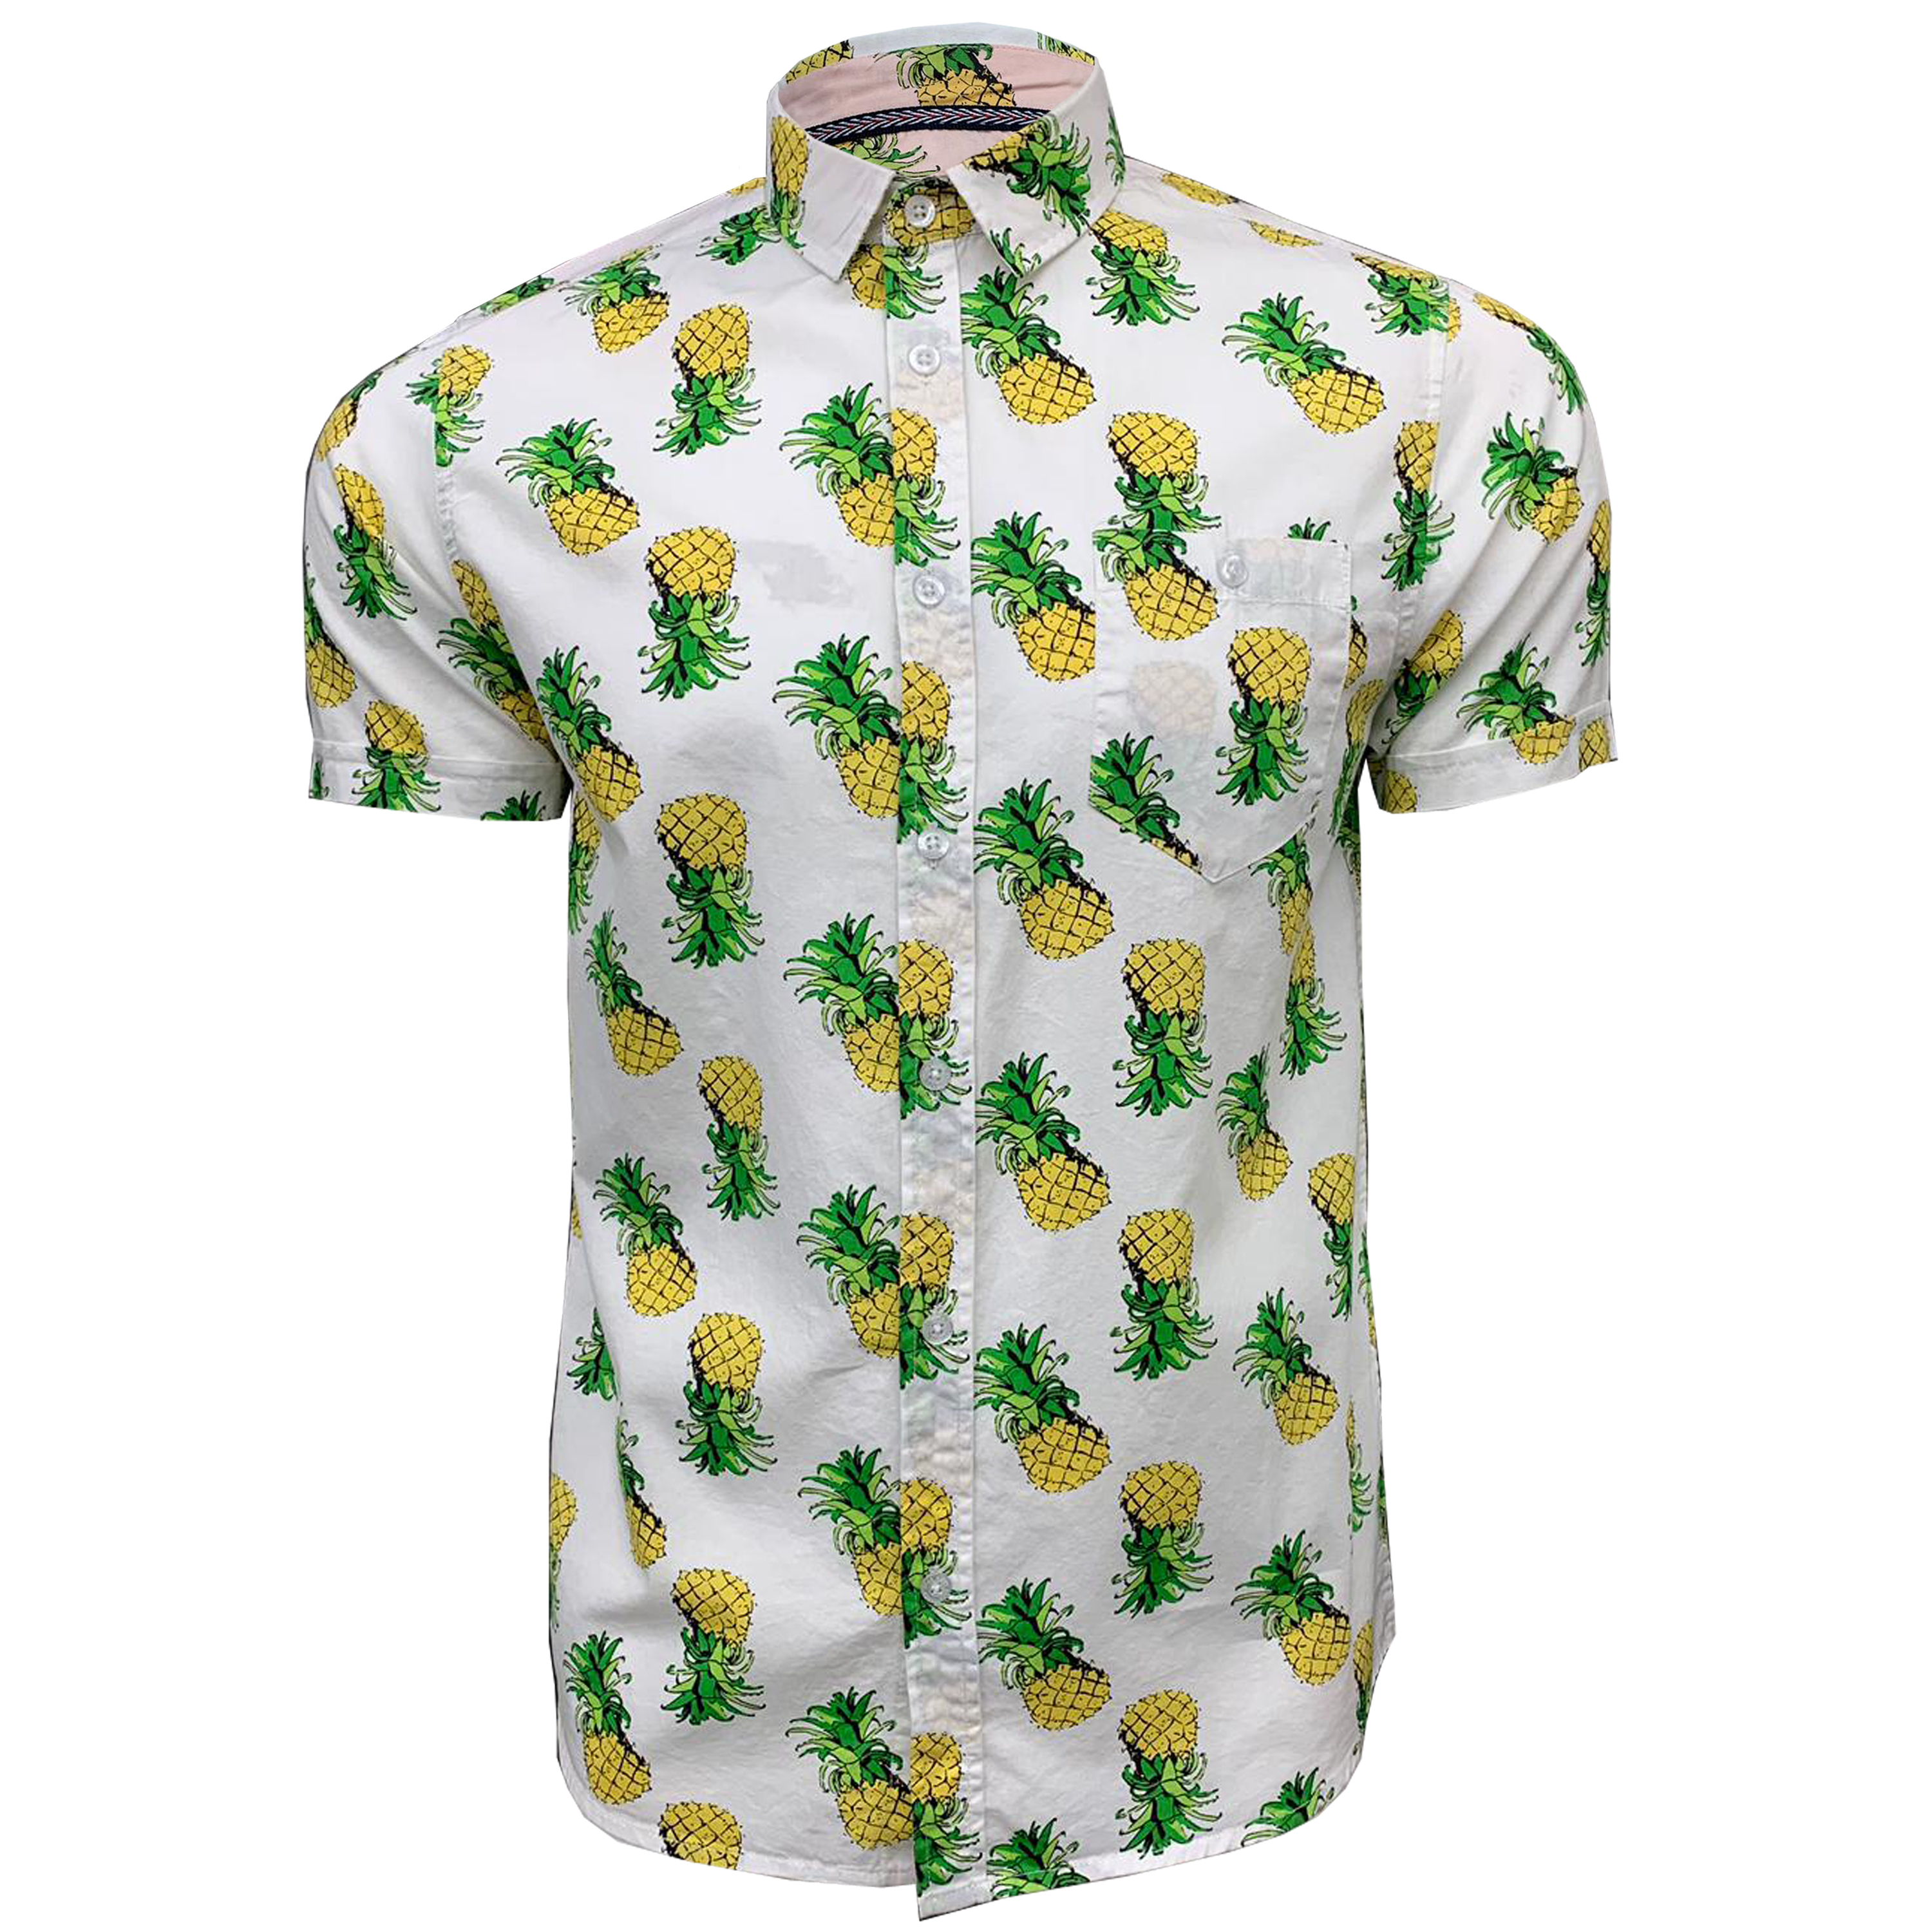 Mens-Cotton-Shirt-Brave-Soul-Pineapple-Can-Printed-Short-Sleeved-Casual-Summer thumbnail 5